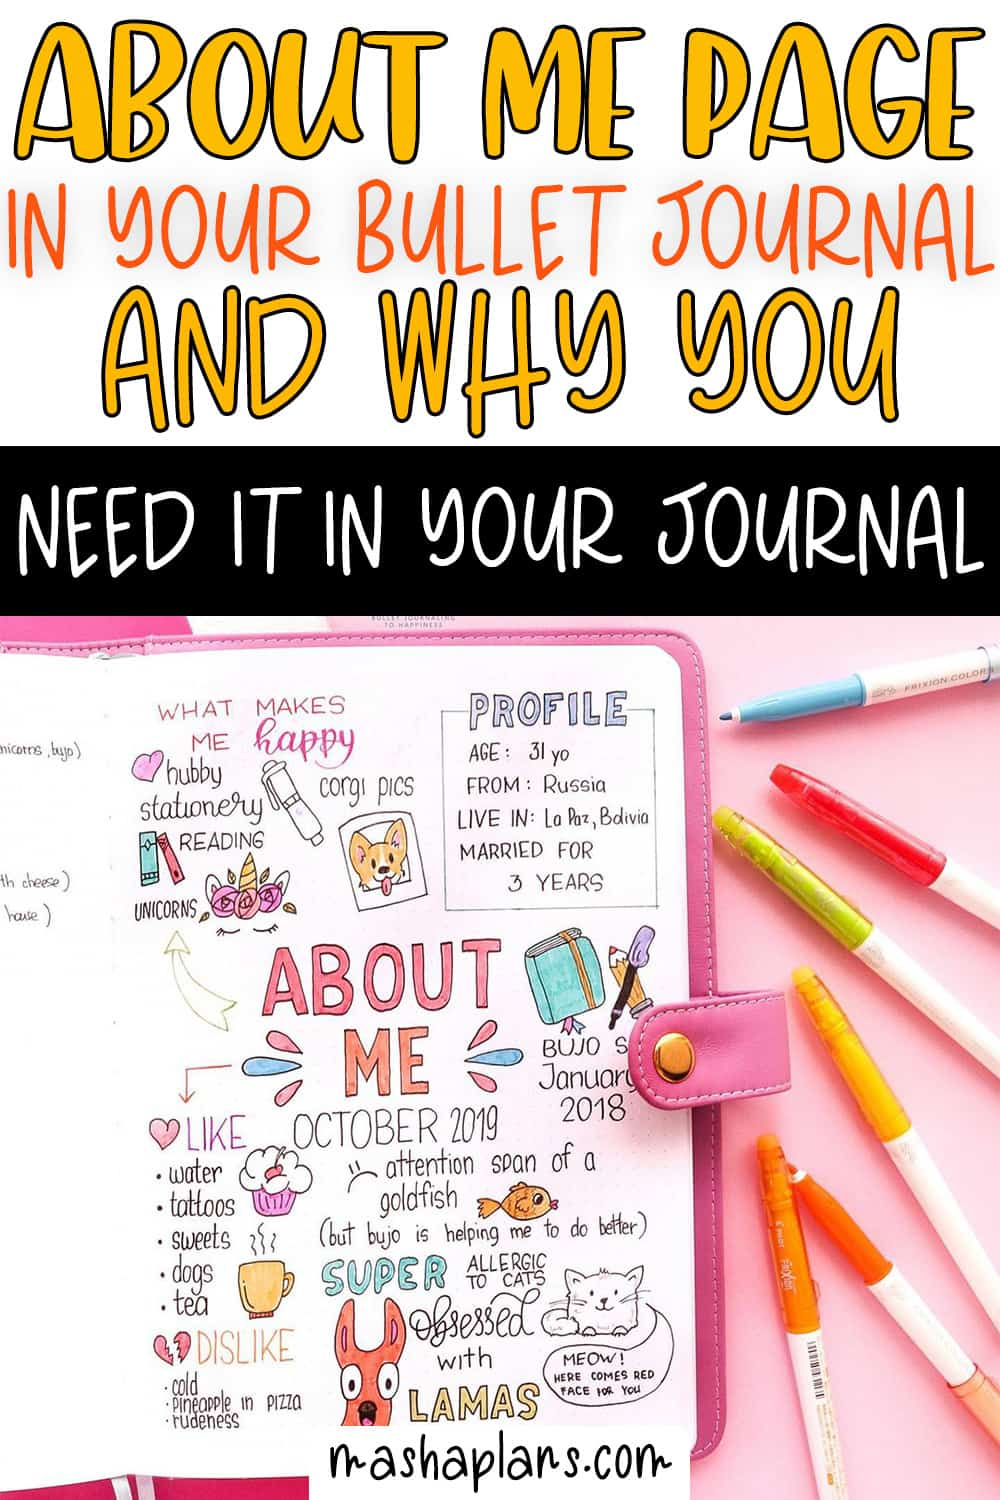 About Me Page In Your Bullet Journal And Why You Need One | Masha Plans